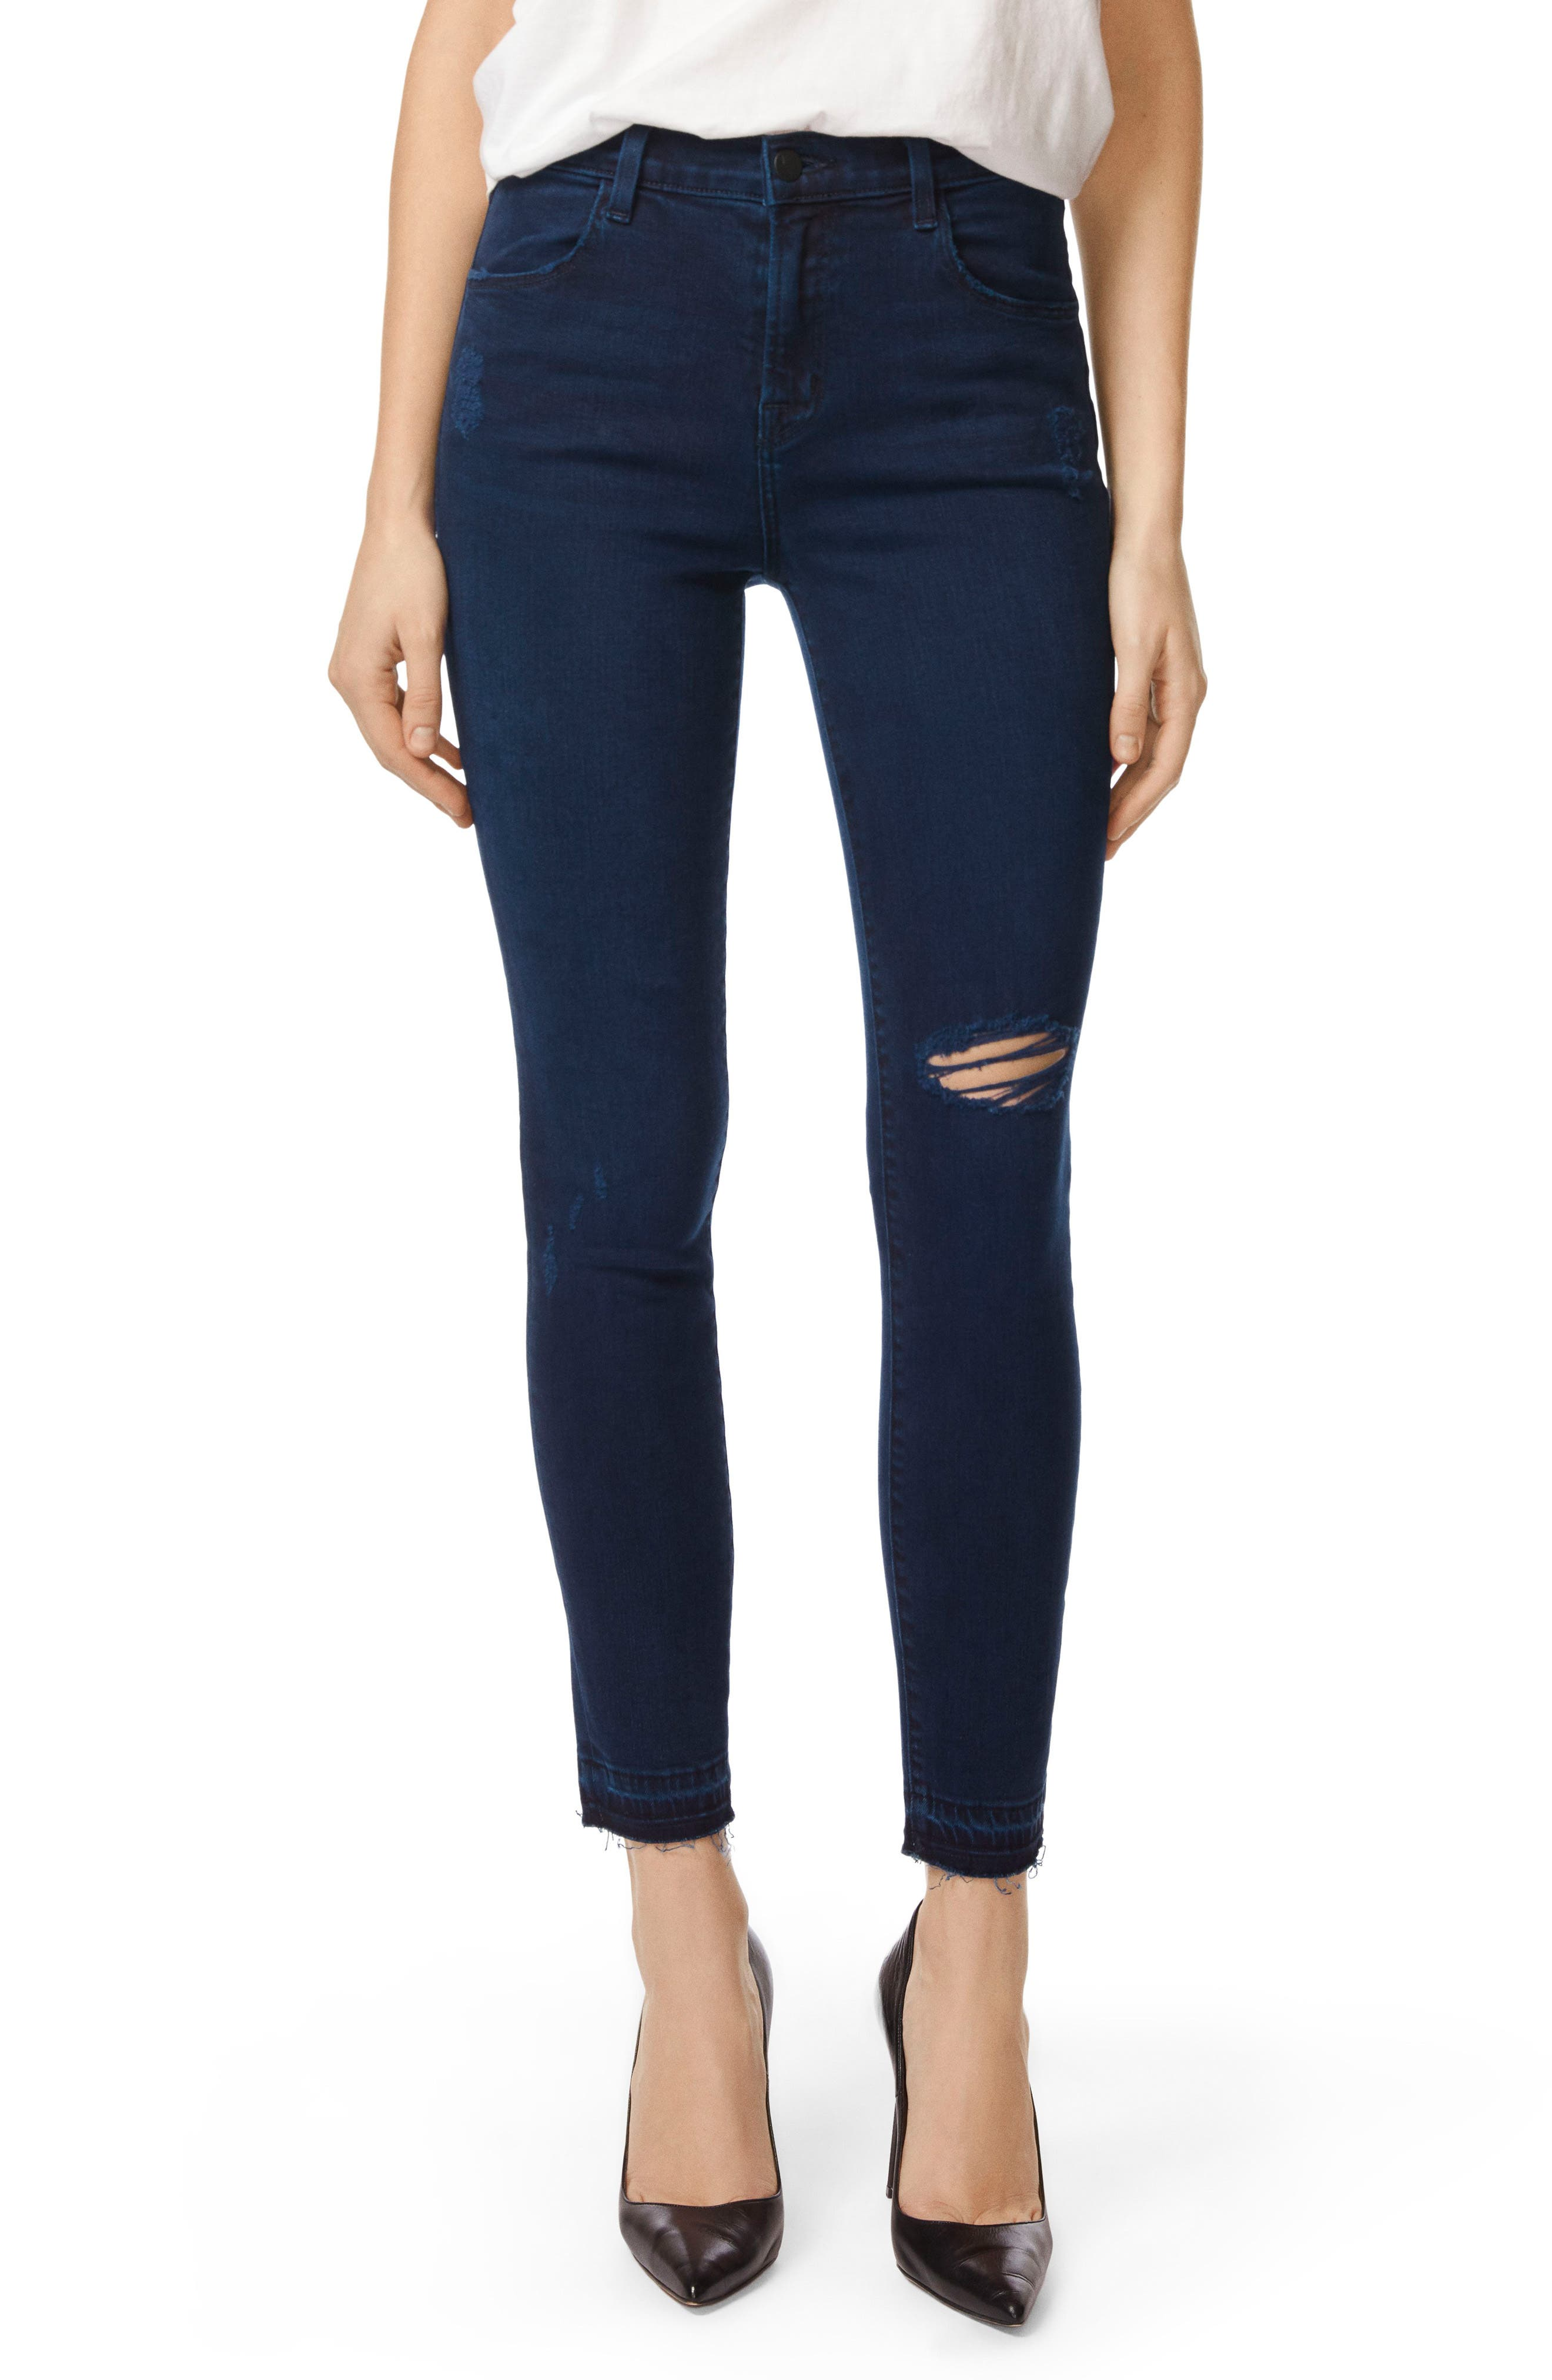 Alana Released Hem High Rise Crop Skinny Jeans,                             Main thumbnail 1, color,                             INVOKE DESTRUCT